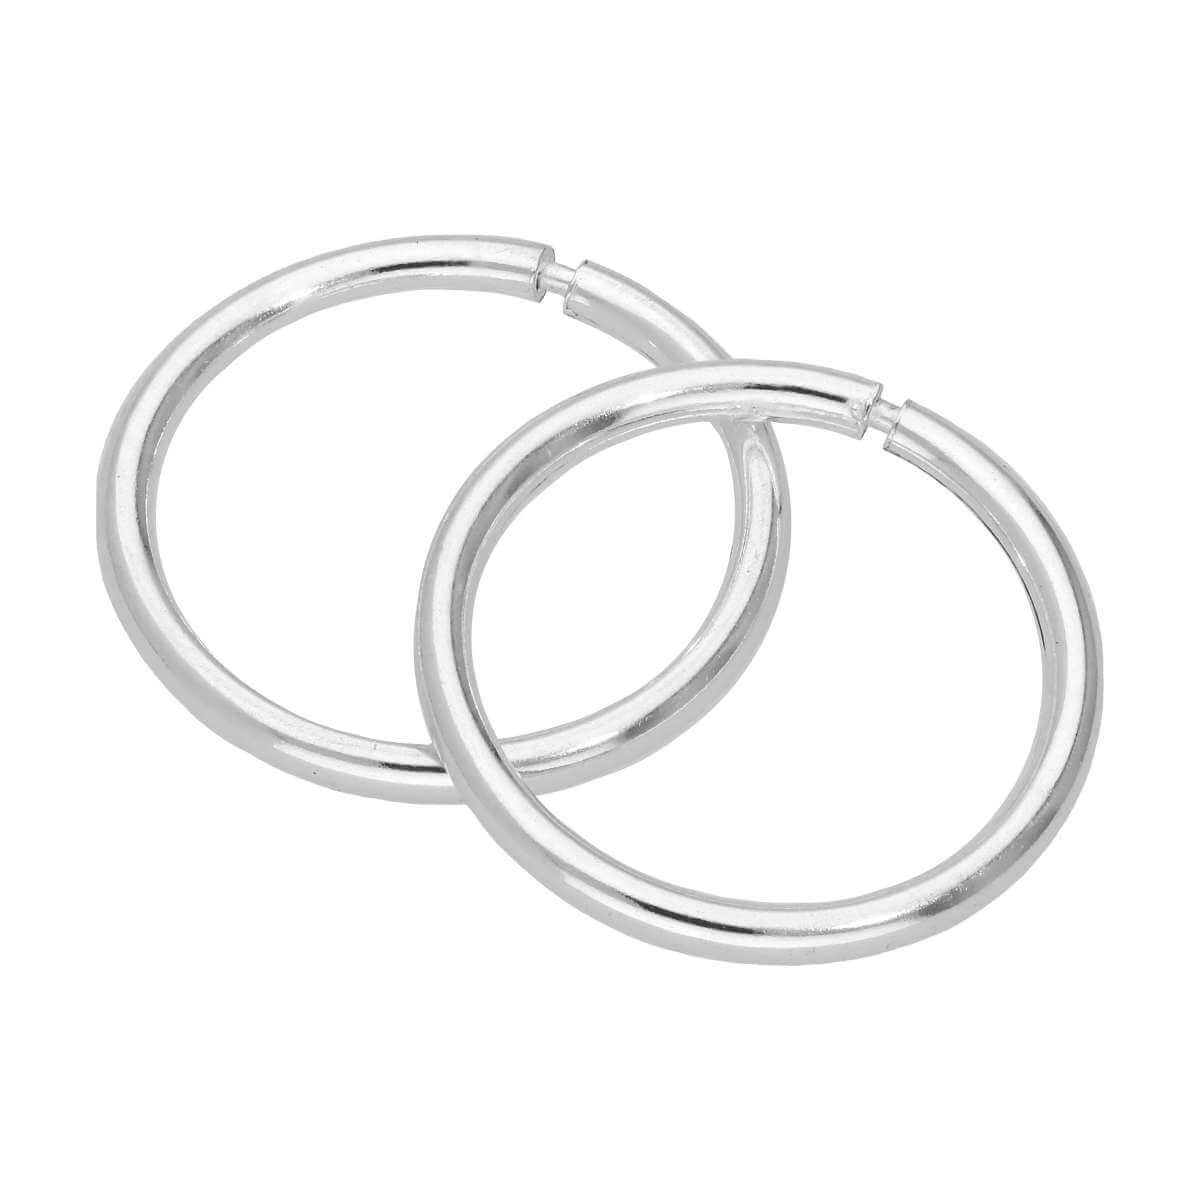 Sterling Silver 1mm Tube Sleeper 14mm Hoop Earrings